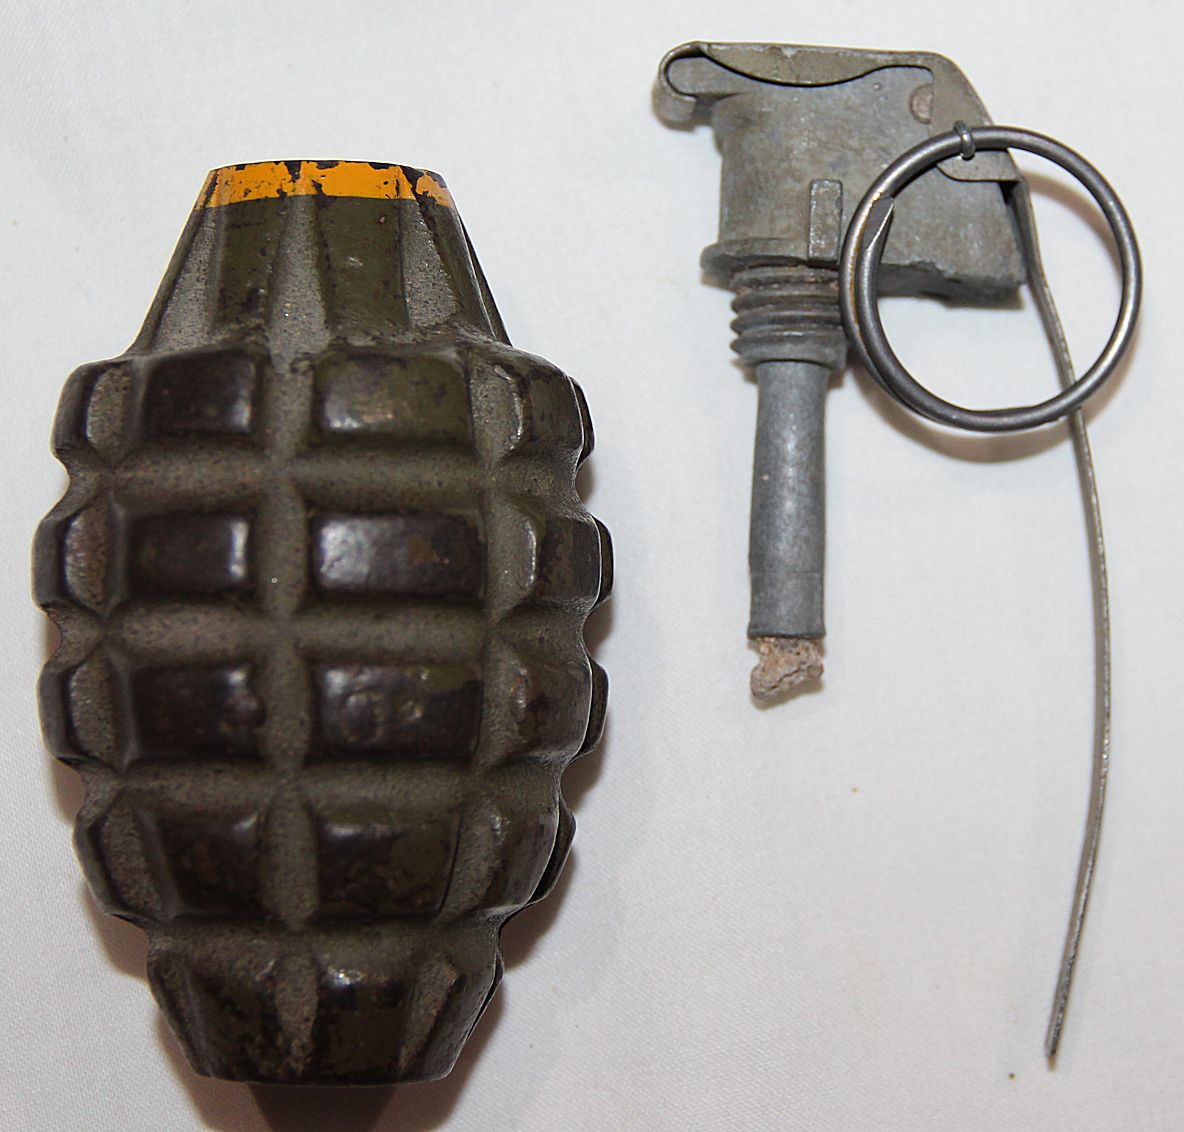 E070  INERT WWII MKII HE HAND GRENADE WITH M10A3 FUSE AND SPOON